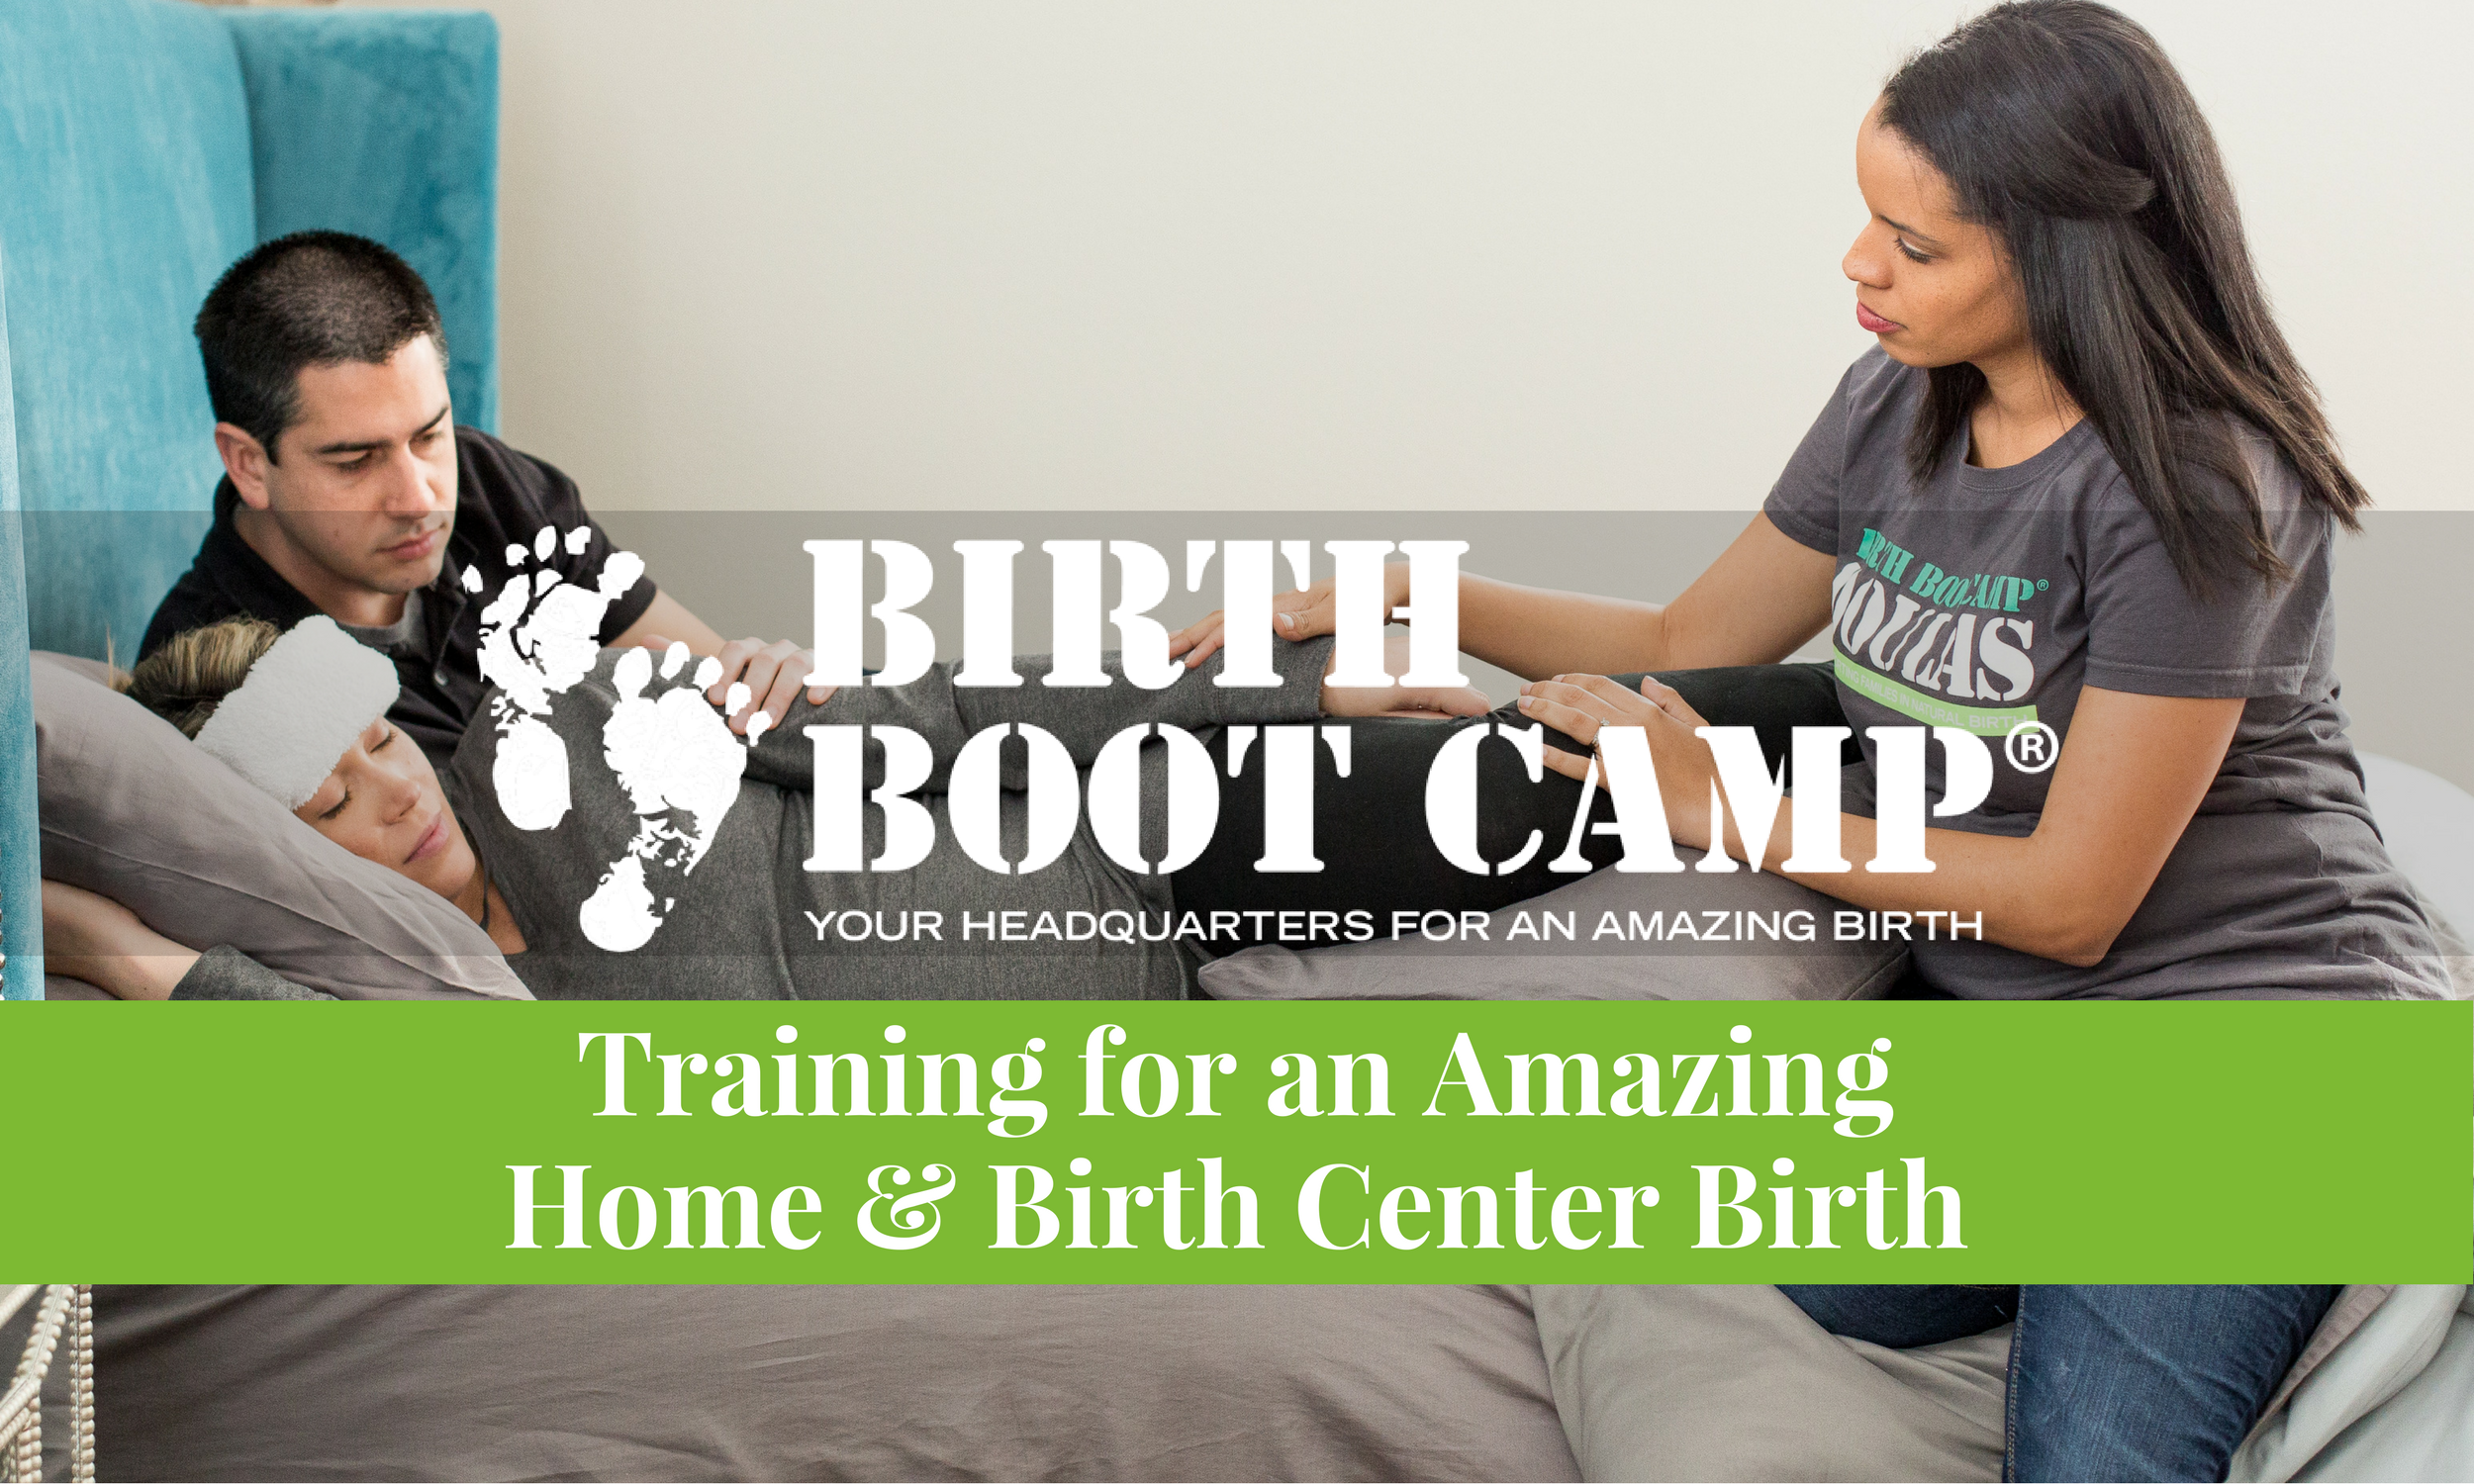 Birth Boot Camp Home and Birth Center Birth Class taught by Melanie Galloway.